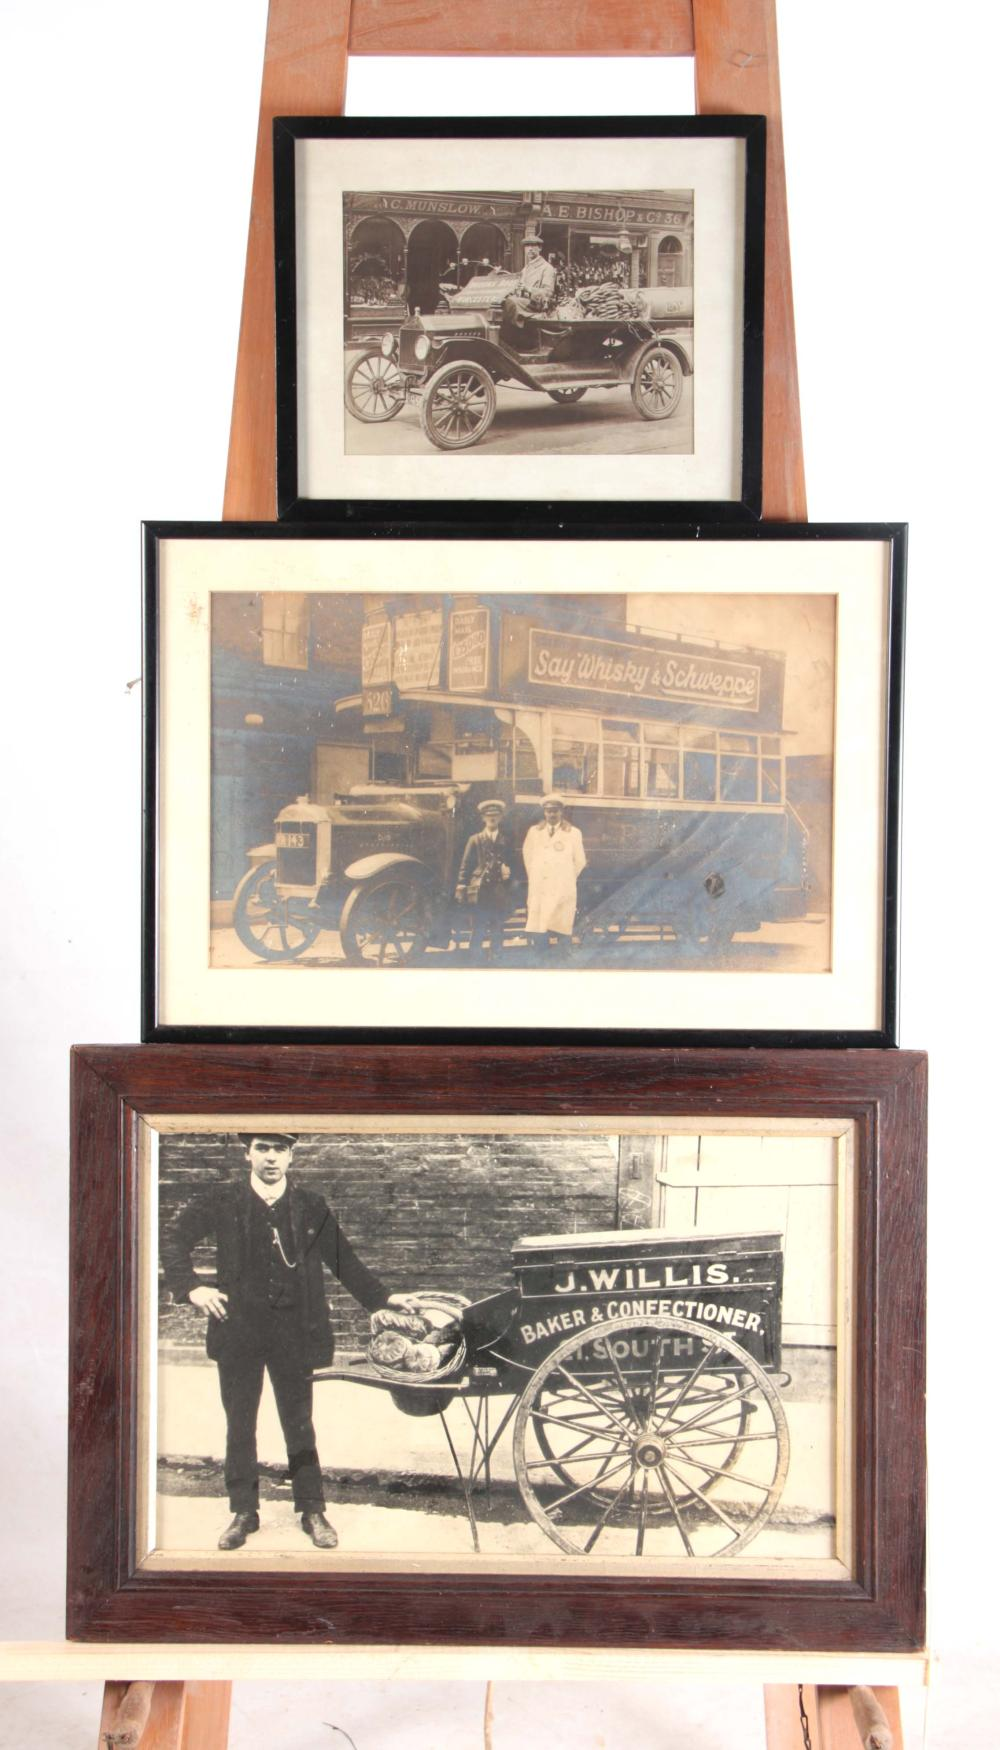 THREE LARGE EARLY 20th CENTURY PHOTOGRAPHIC PRINT